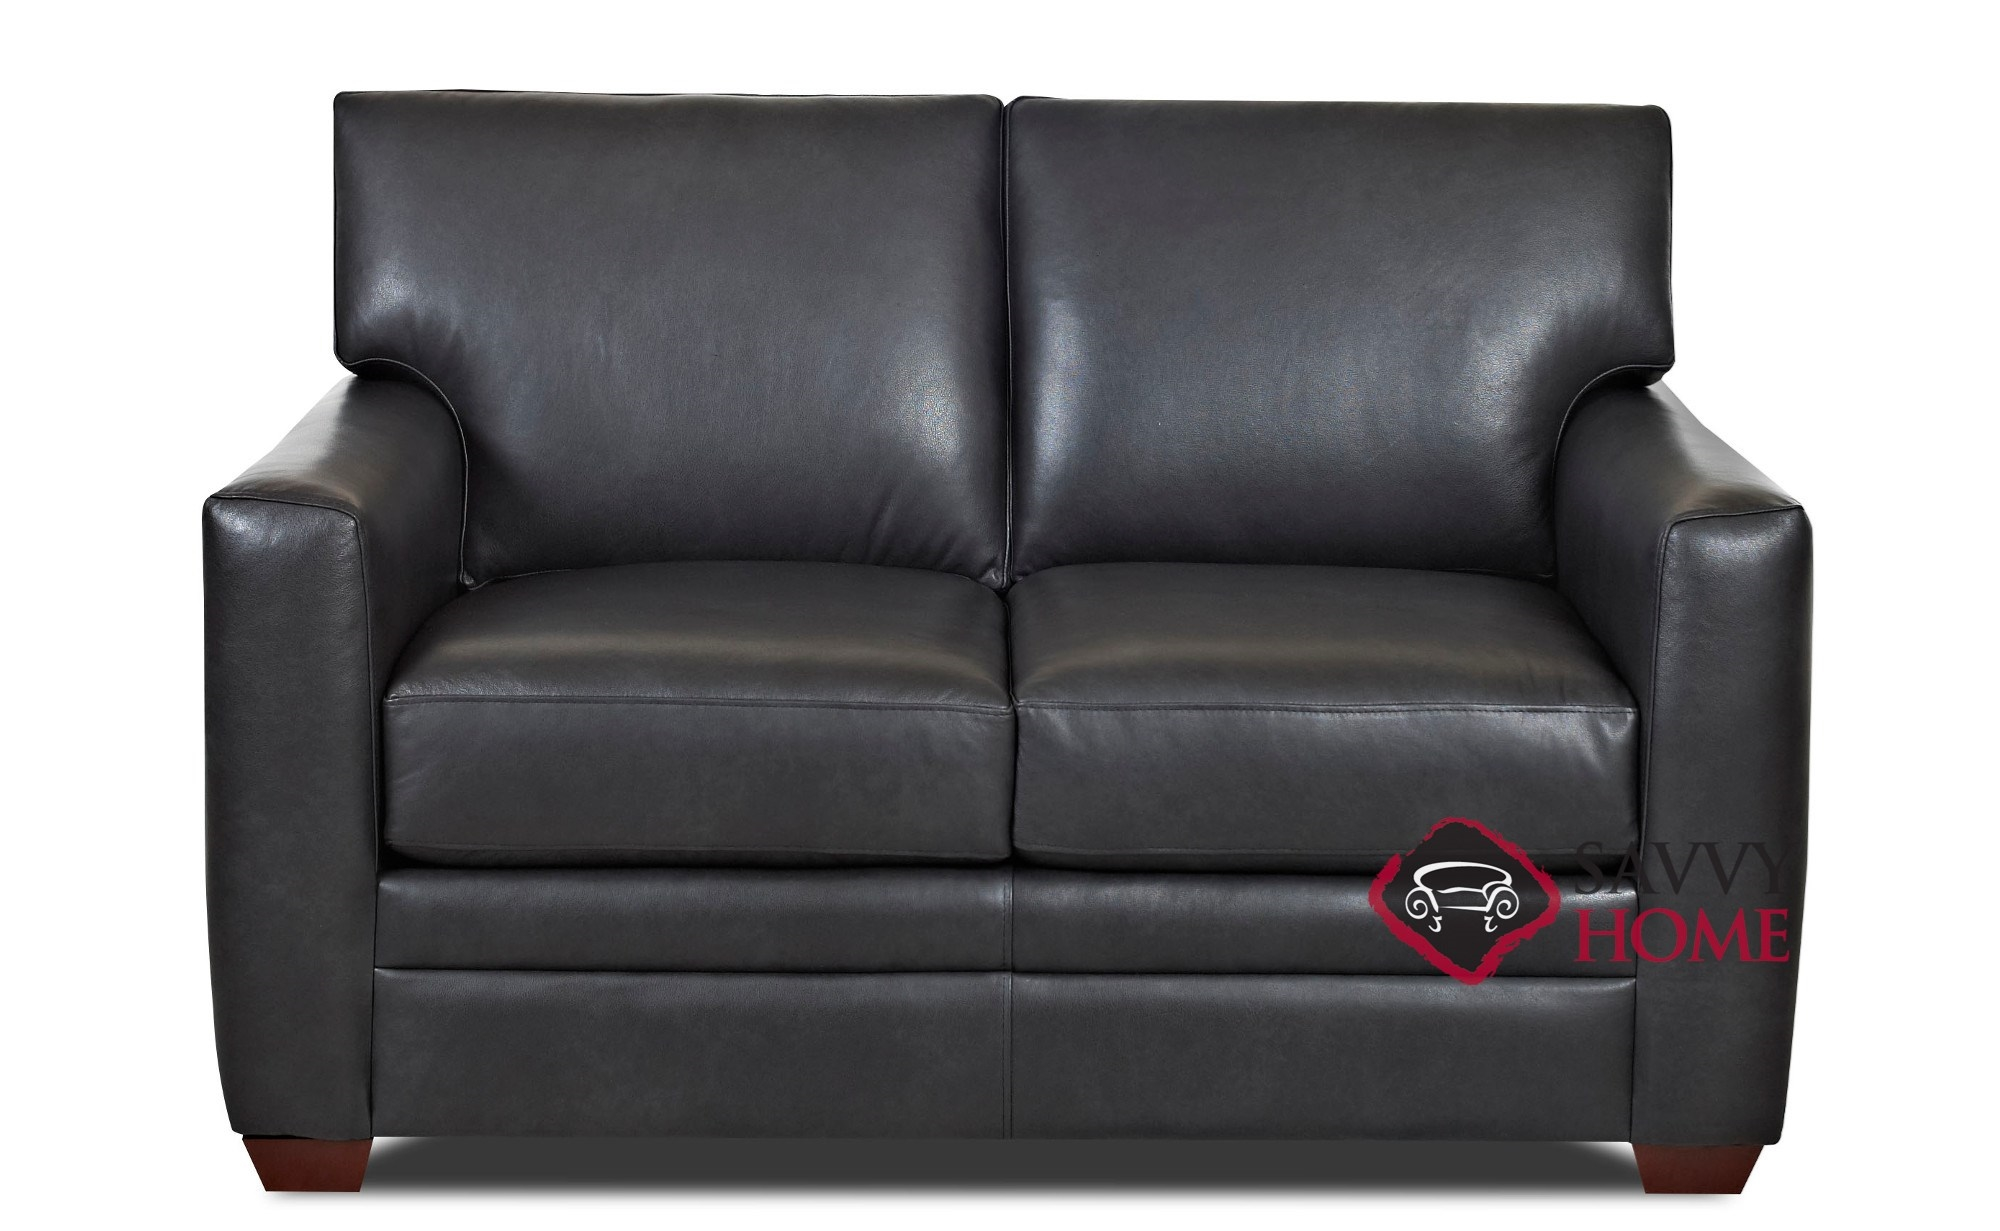 Marvelous Bel Air Leather Loveseat By Savvy Gmtry Best Dining Table And Chair Ideas Images Gmtryco